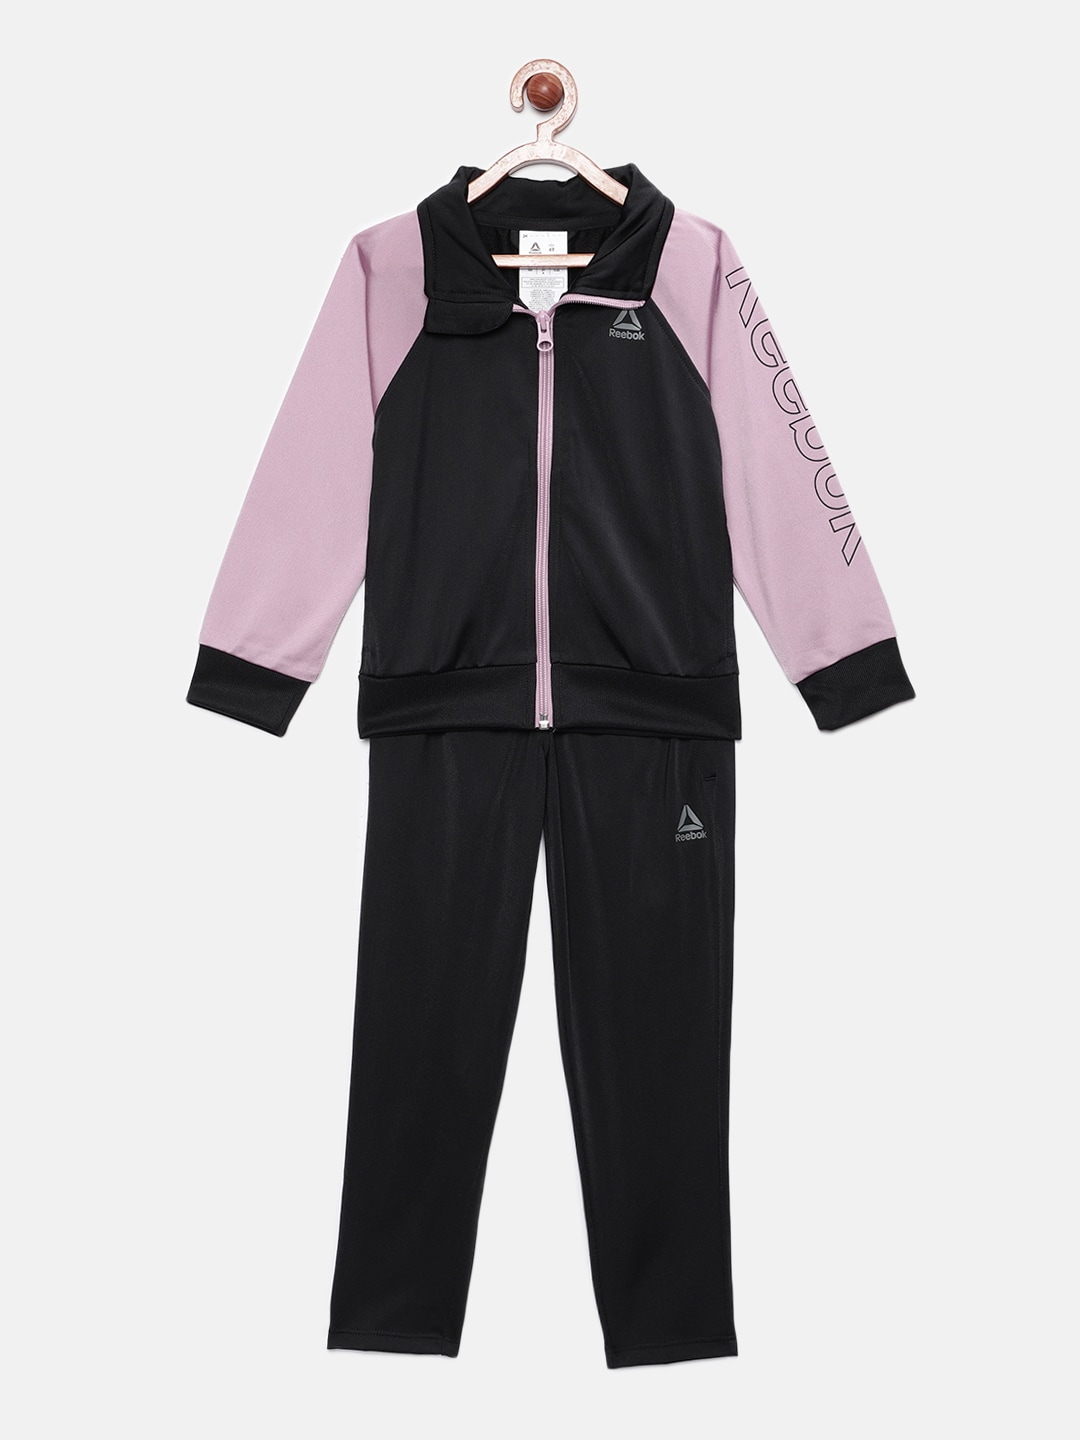 a4791cea4565 Reebok Tracksuits Casual Shoes - Buy Reebok Tracksuits Casual Shoes online  in India